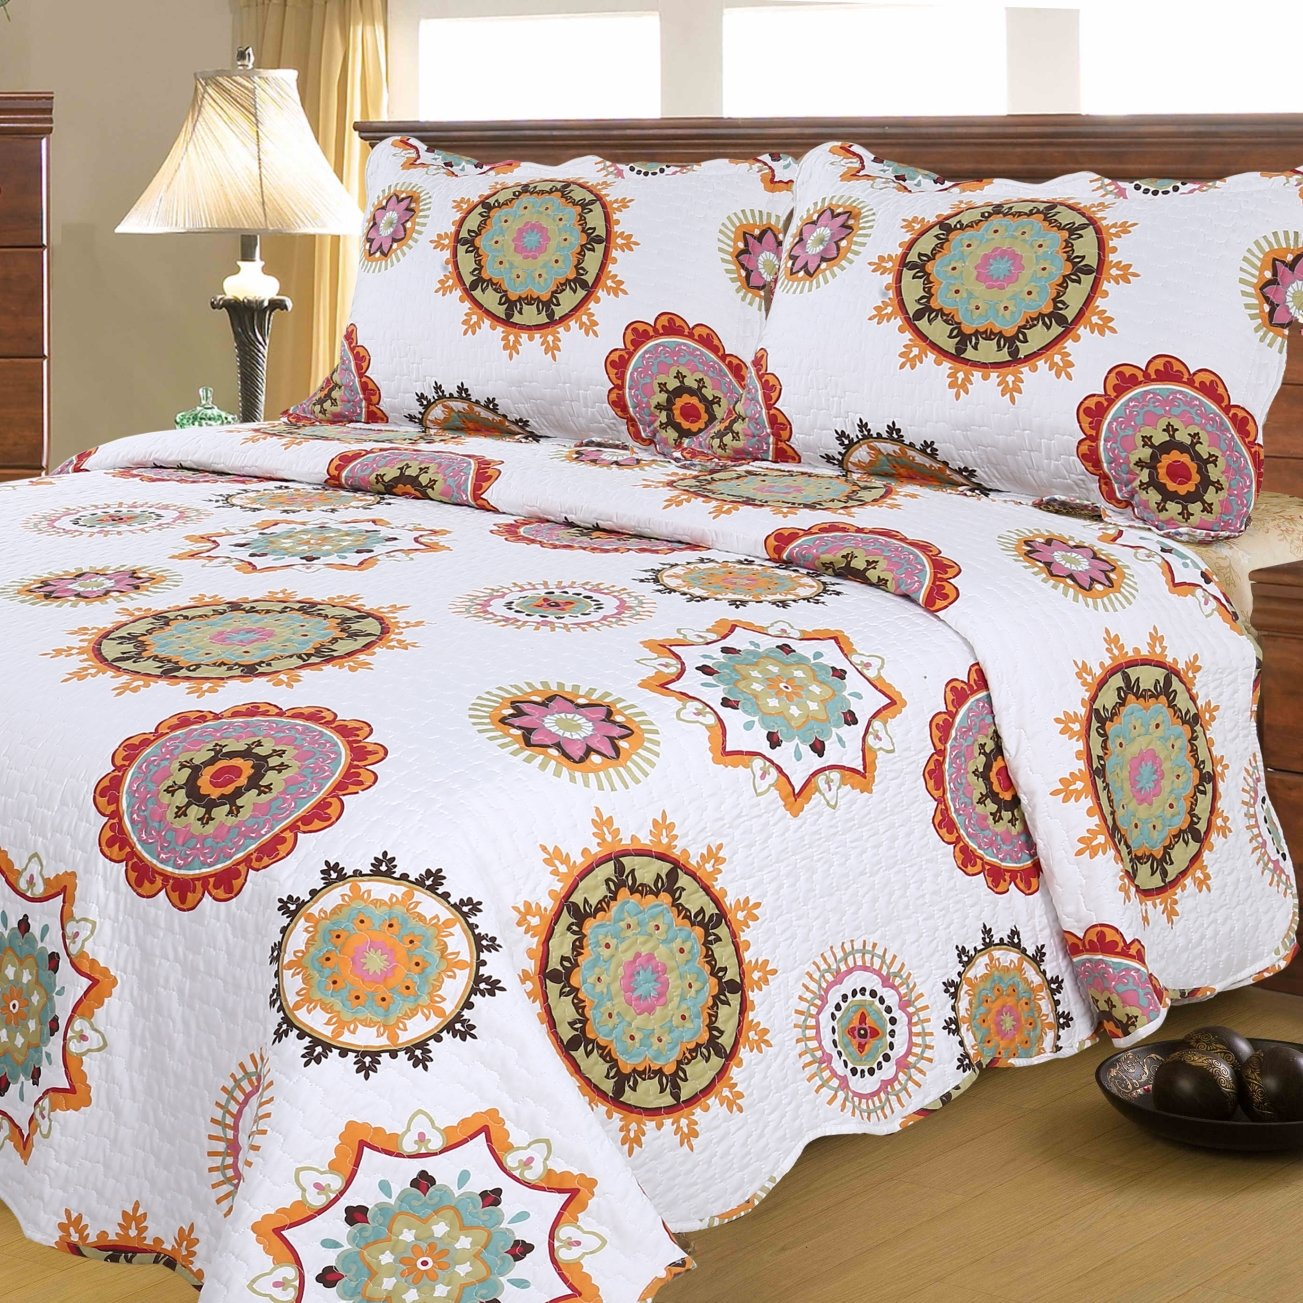 Mohap Reversible Quilt Set with 2 Shams Queen Size Hypoallergenic for All Season Pattern#5